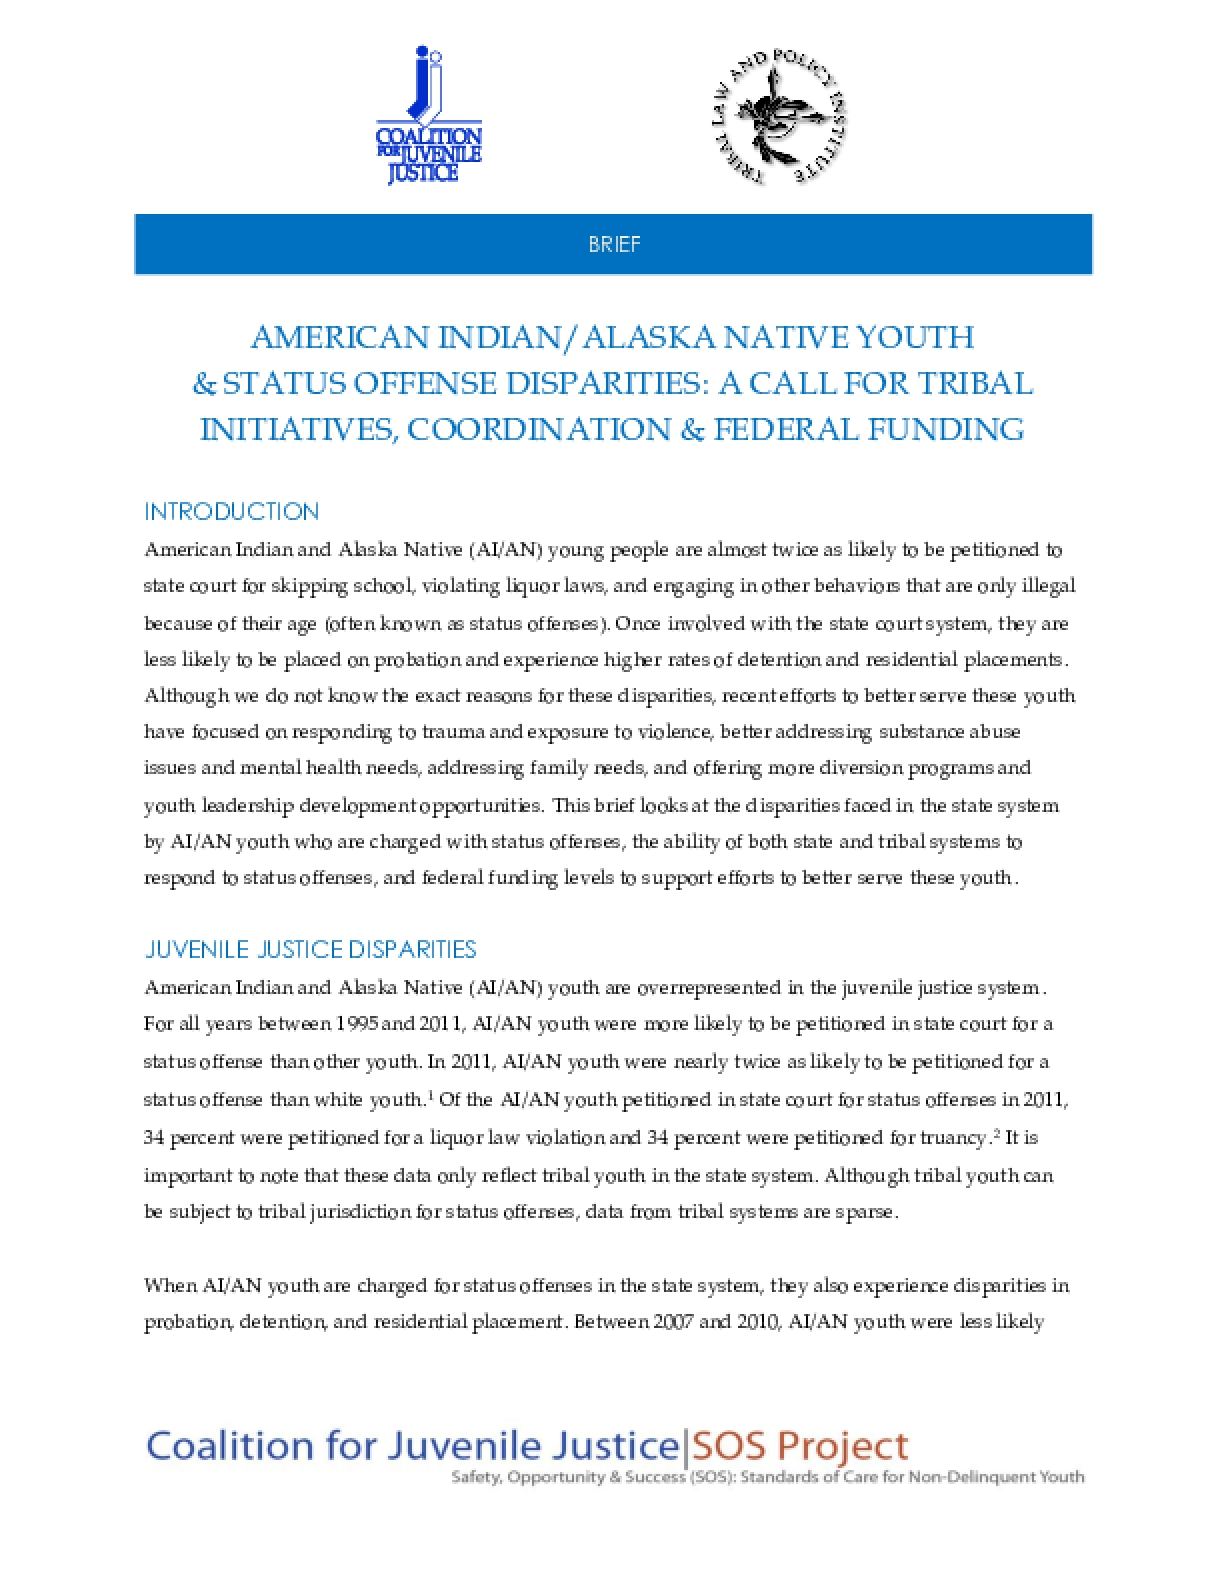 American Indian/Alaska Native Youth & Status Offense Disparities: A Call for Tribal Initiatives, Coordination & Federal Funding